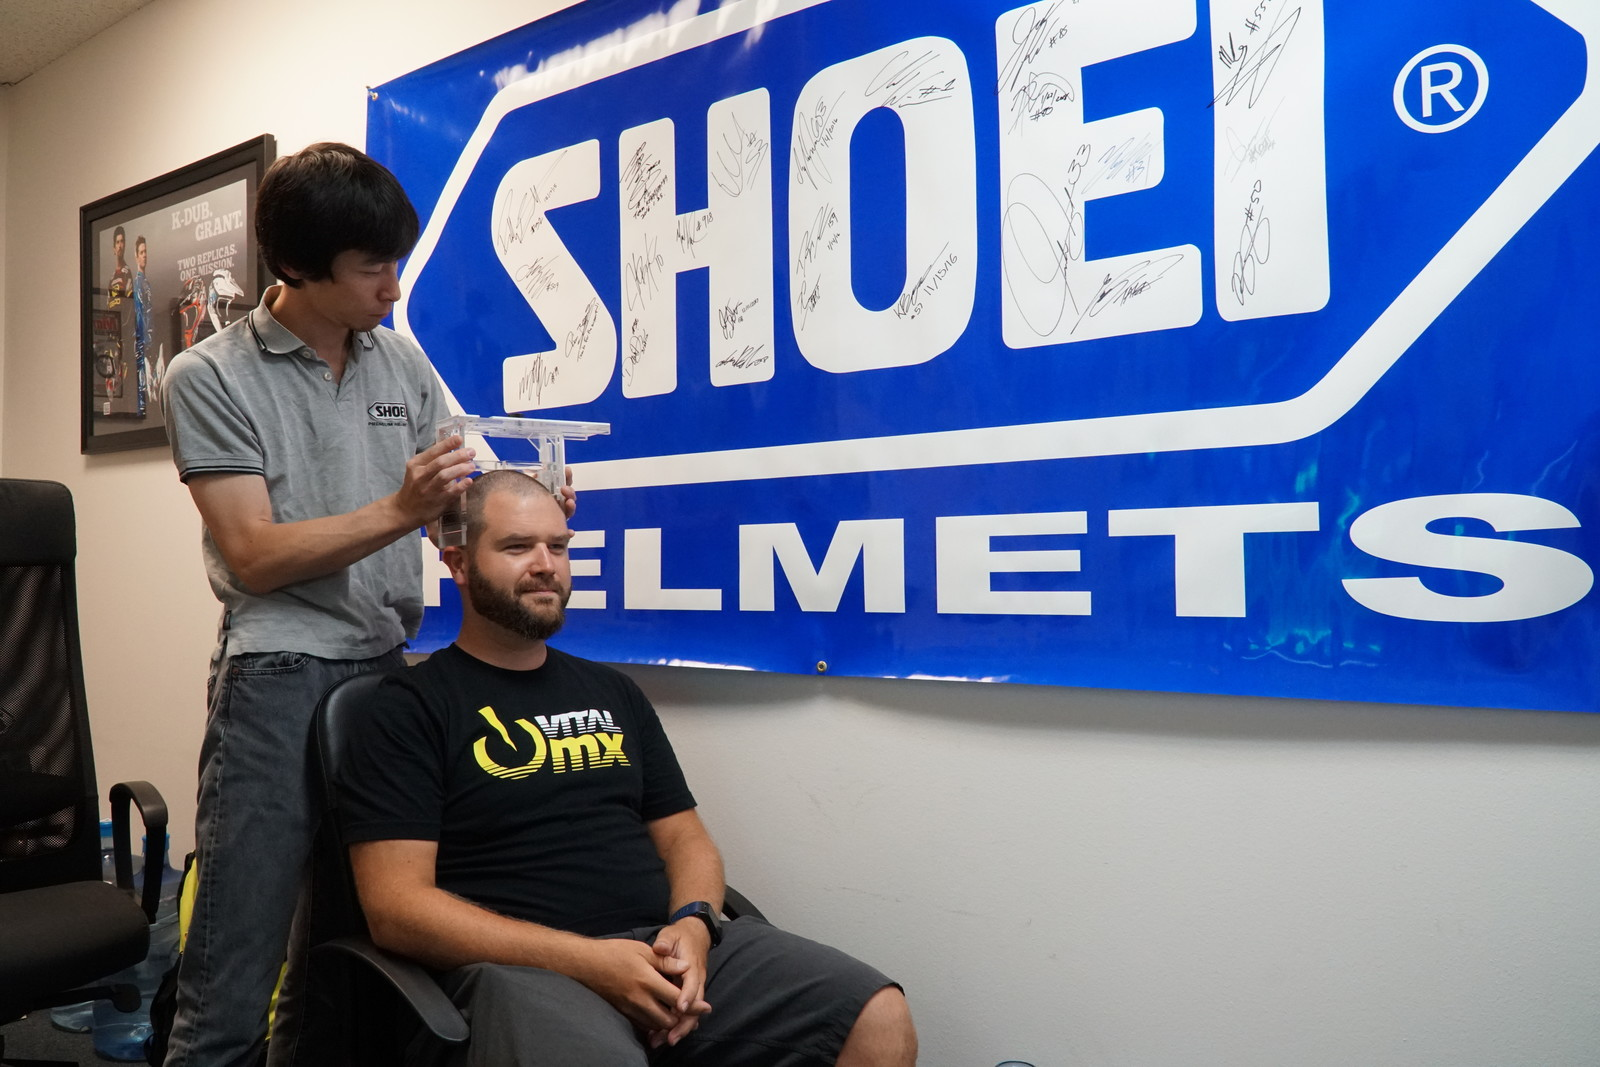 Mr. Moichi Tsuzuki, President of SHOEI North America, uses the measuring device to get width, height, and length of my head.